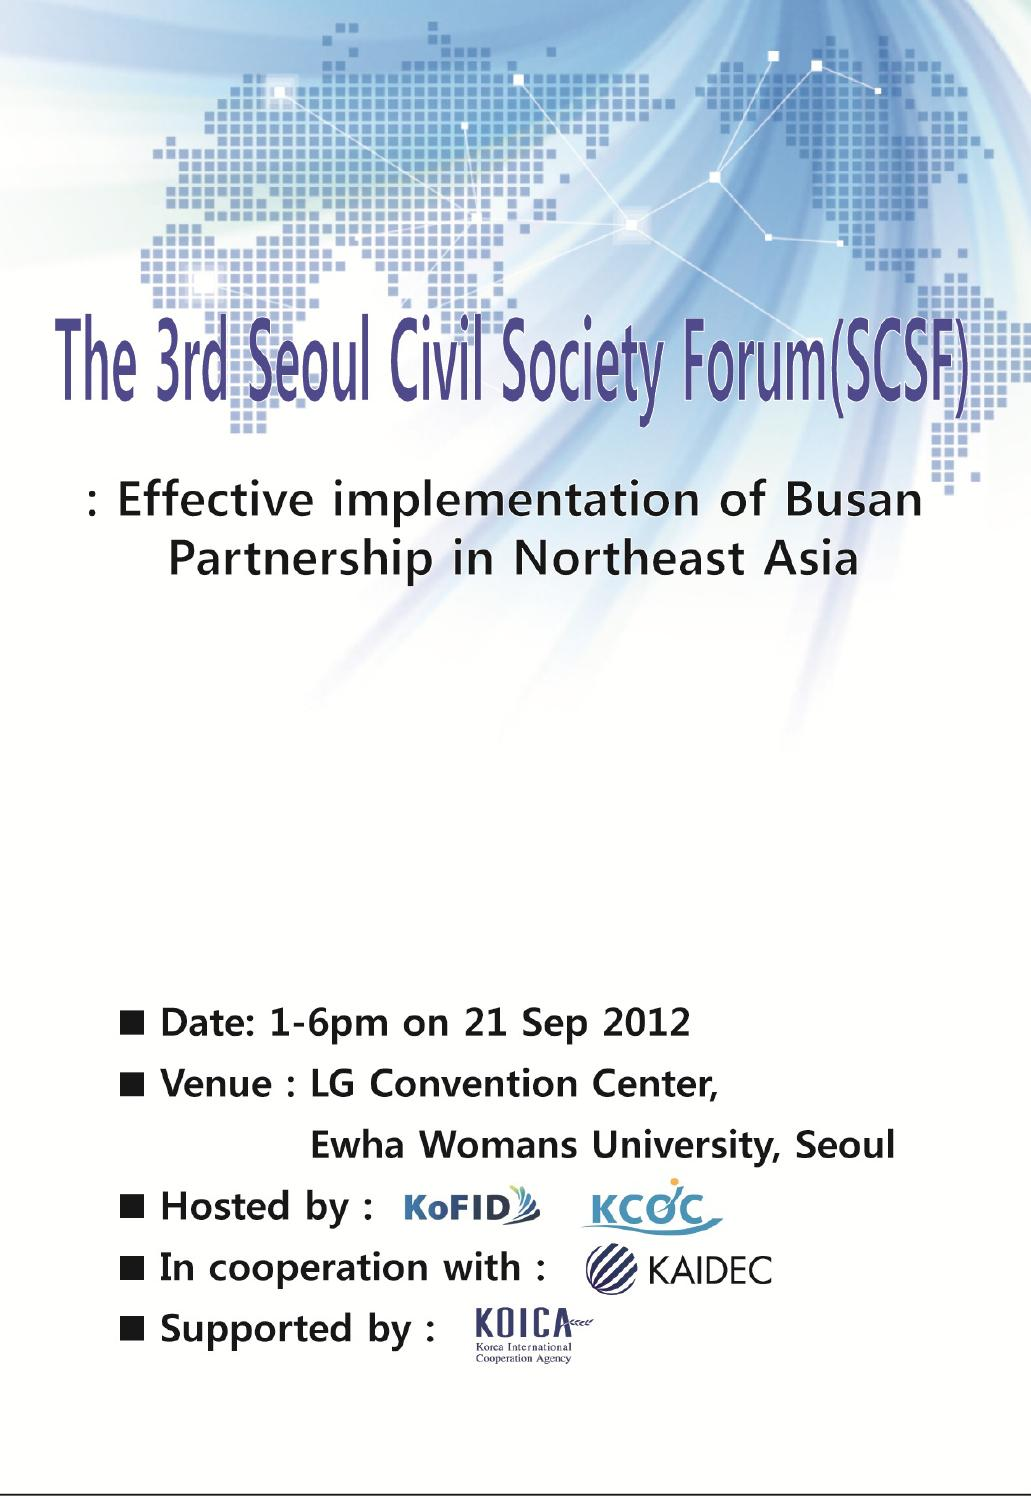 013 The 3rd Civil Society Forum Scsf Effective Implementation Of